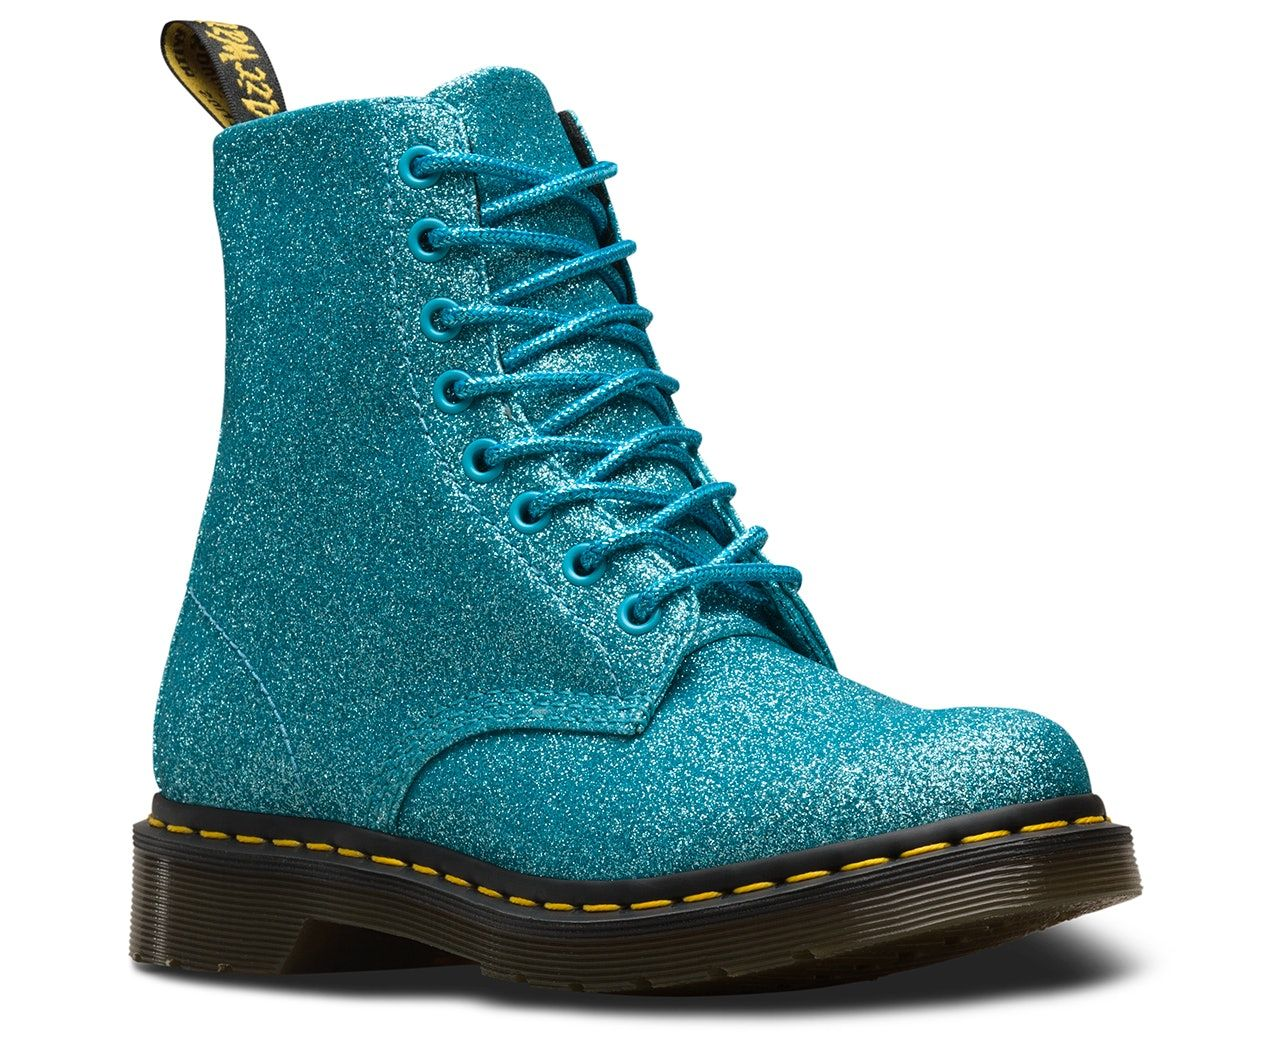 Doc Martens Just Dropped Glittery Boots